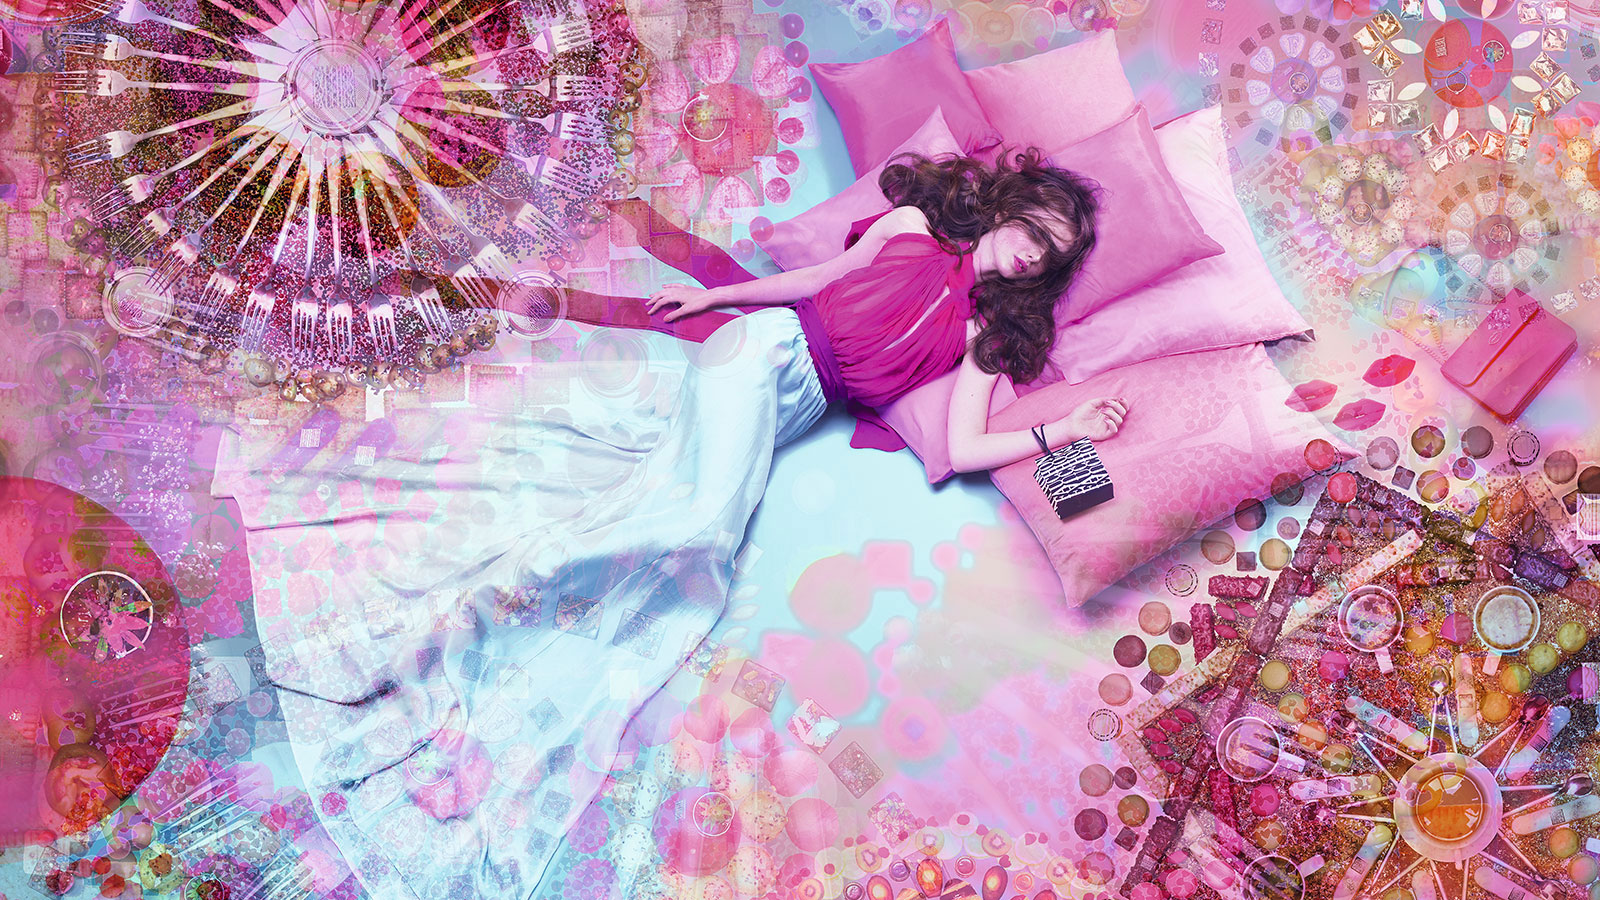 Just close your eyes.Feel Fauchon with all your senses.